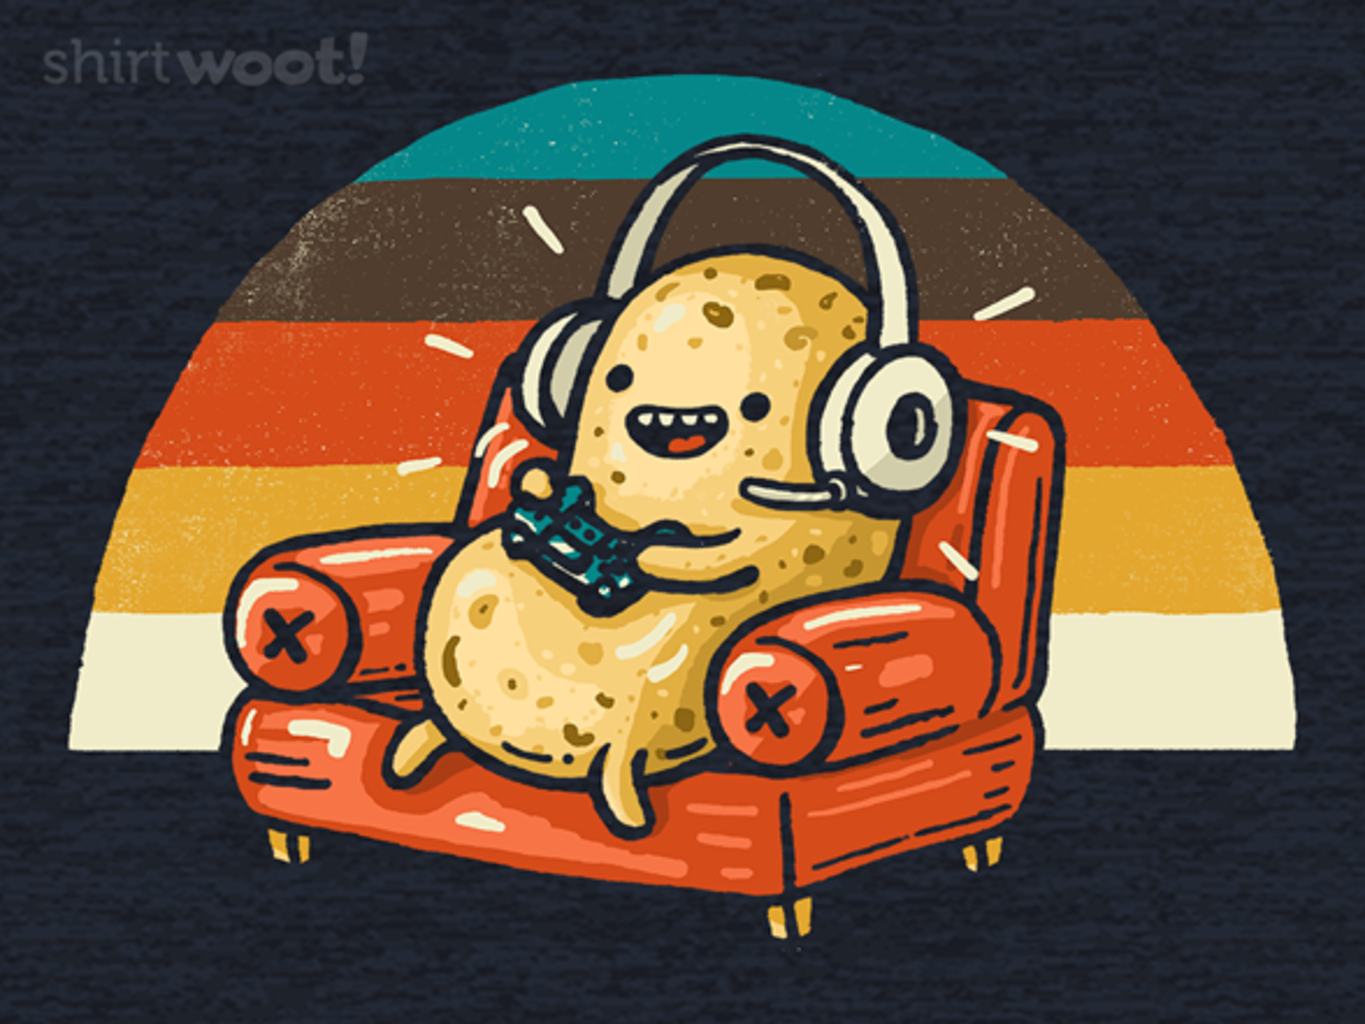 Woot!: A Couch Potato